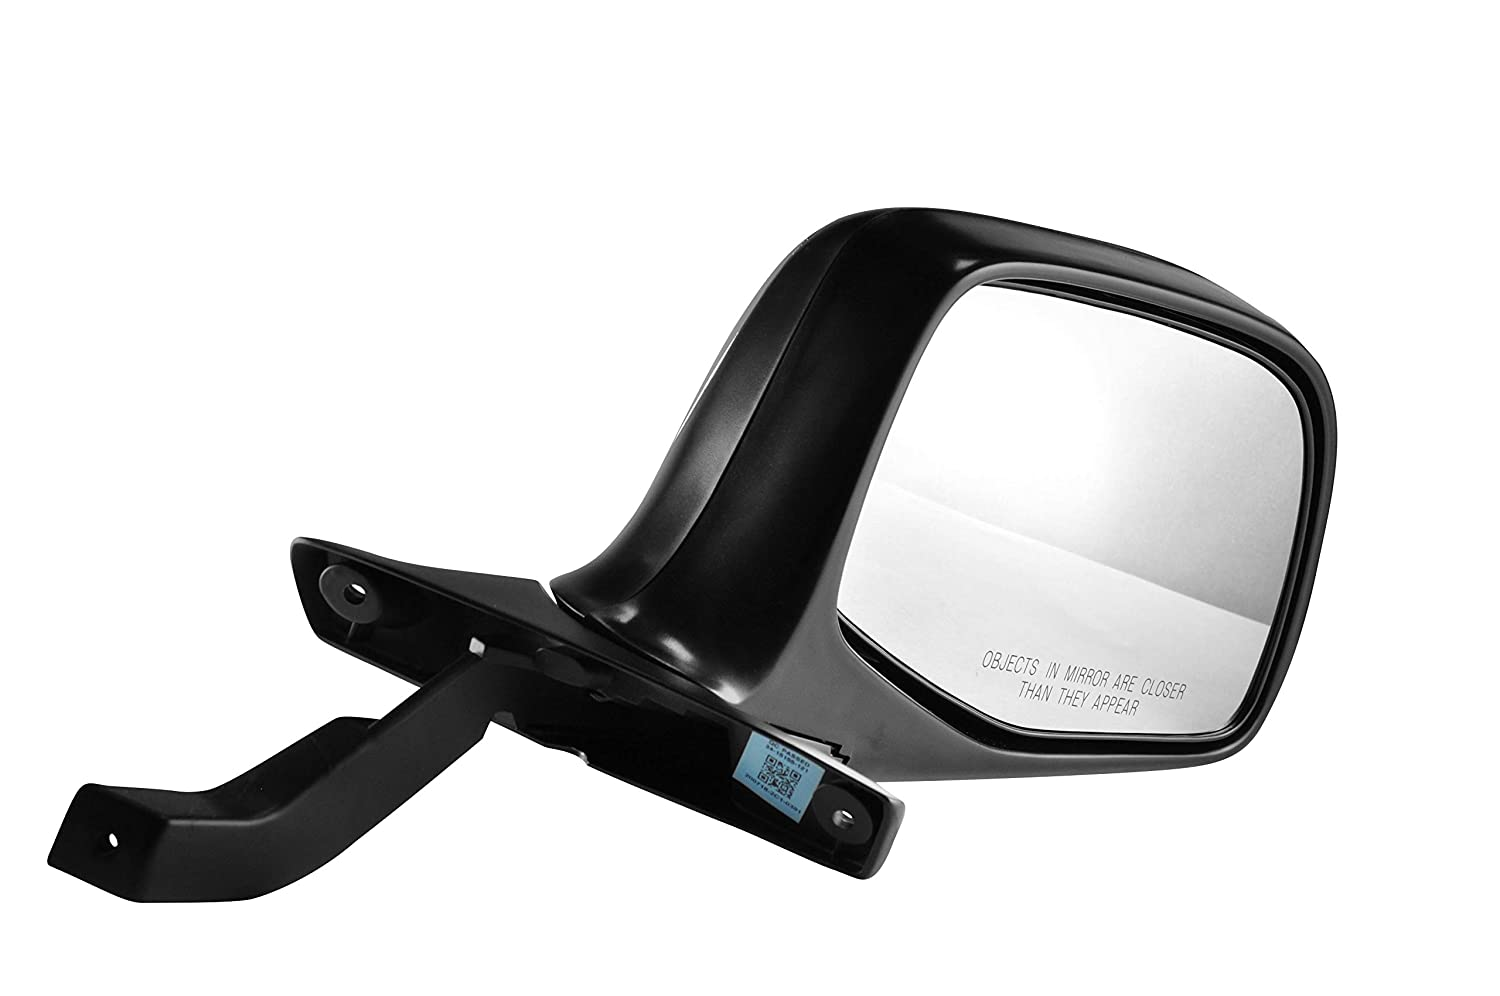 F59 1997 Ford F-250 HD F53 1992-1997 Ford F-350 Passenger Side Chrome Cover Side View Mirror for 1992-1996 Ford F-150 F-250 /& Bronco F Super Duty